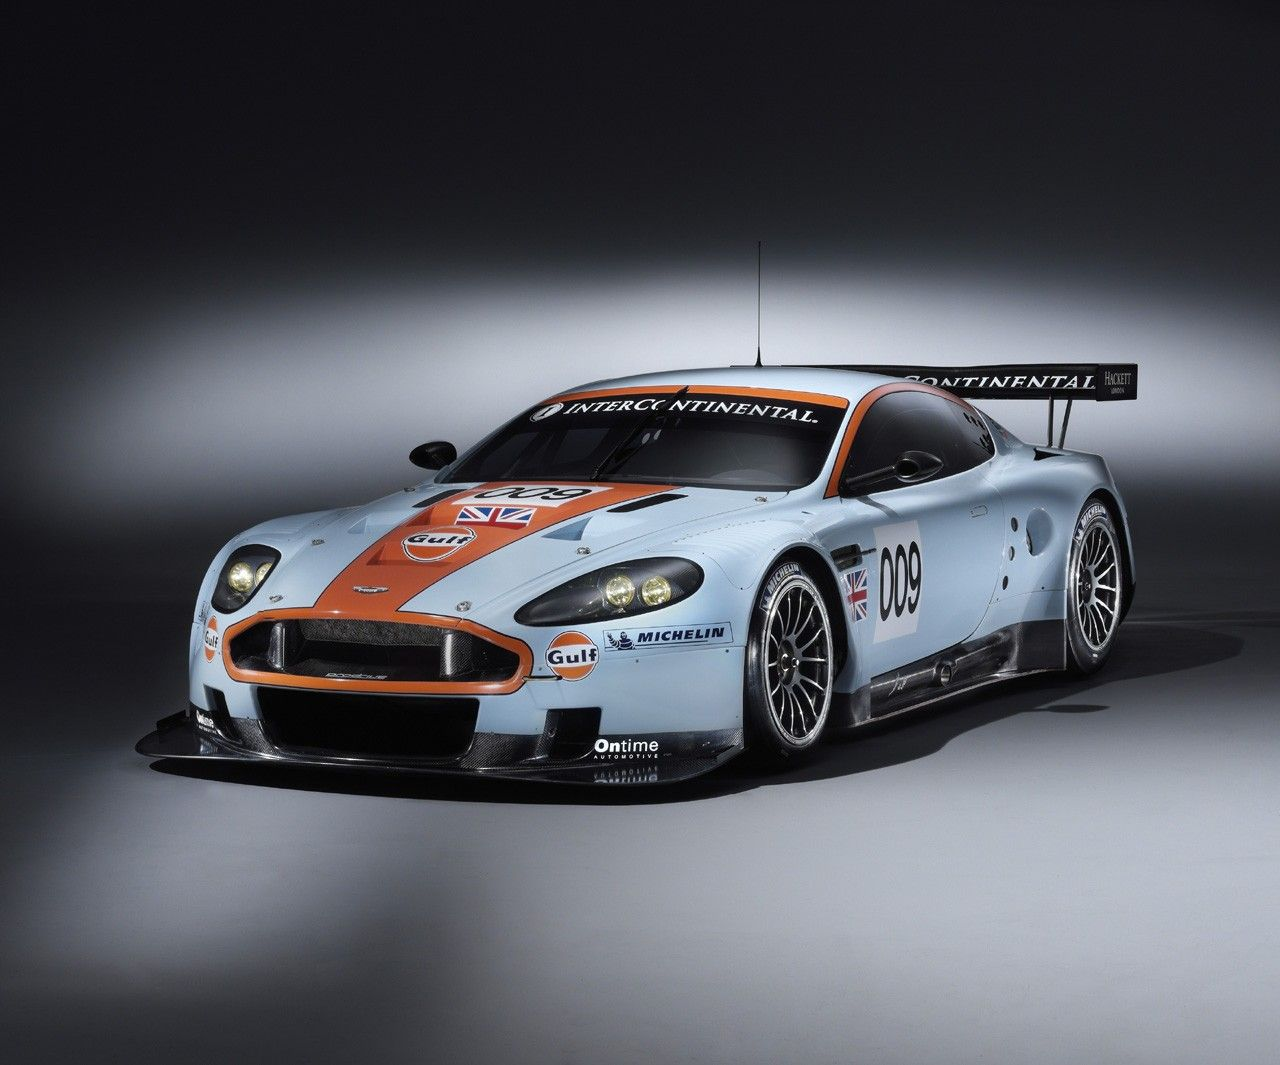 The Aston Martin Vanquish Was First Unveiled At The 2001 Geneva Motor Show And Was Produced Between 2001 And 2007 The Car Was Then Re Introduced And Went Foto S